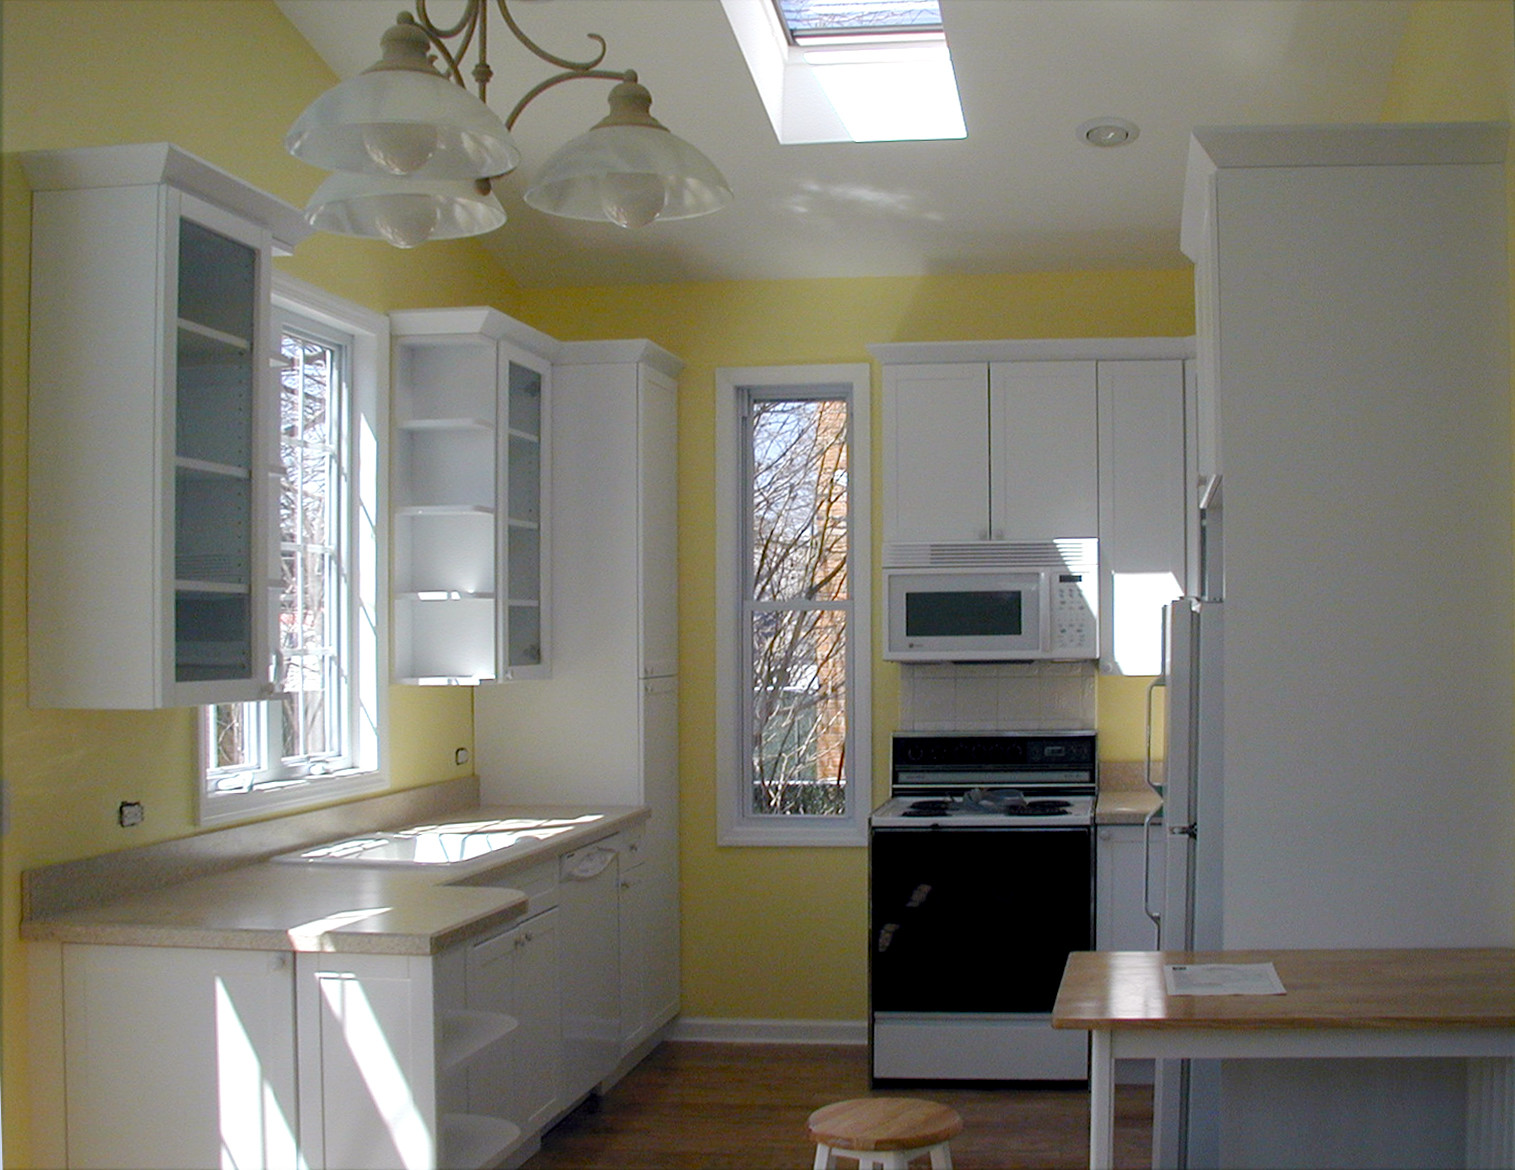 Floral Park Kitchen Renovation